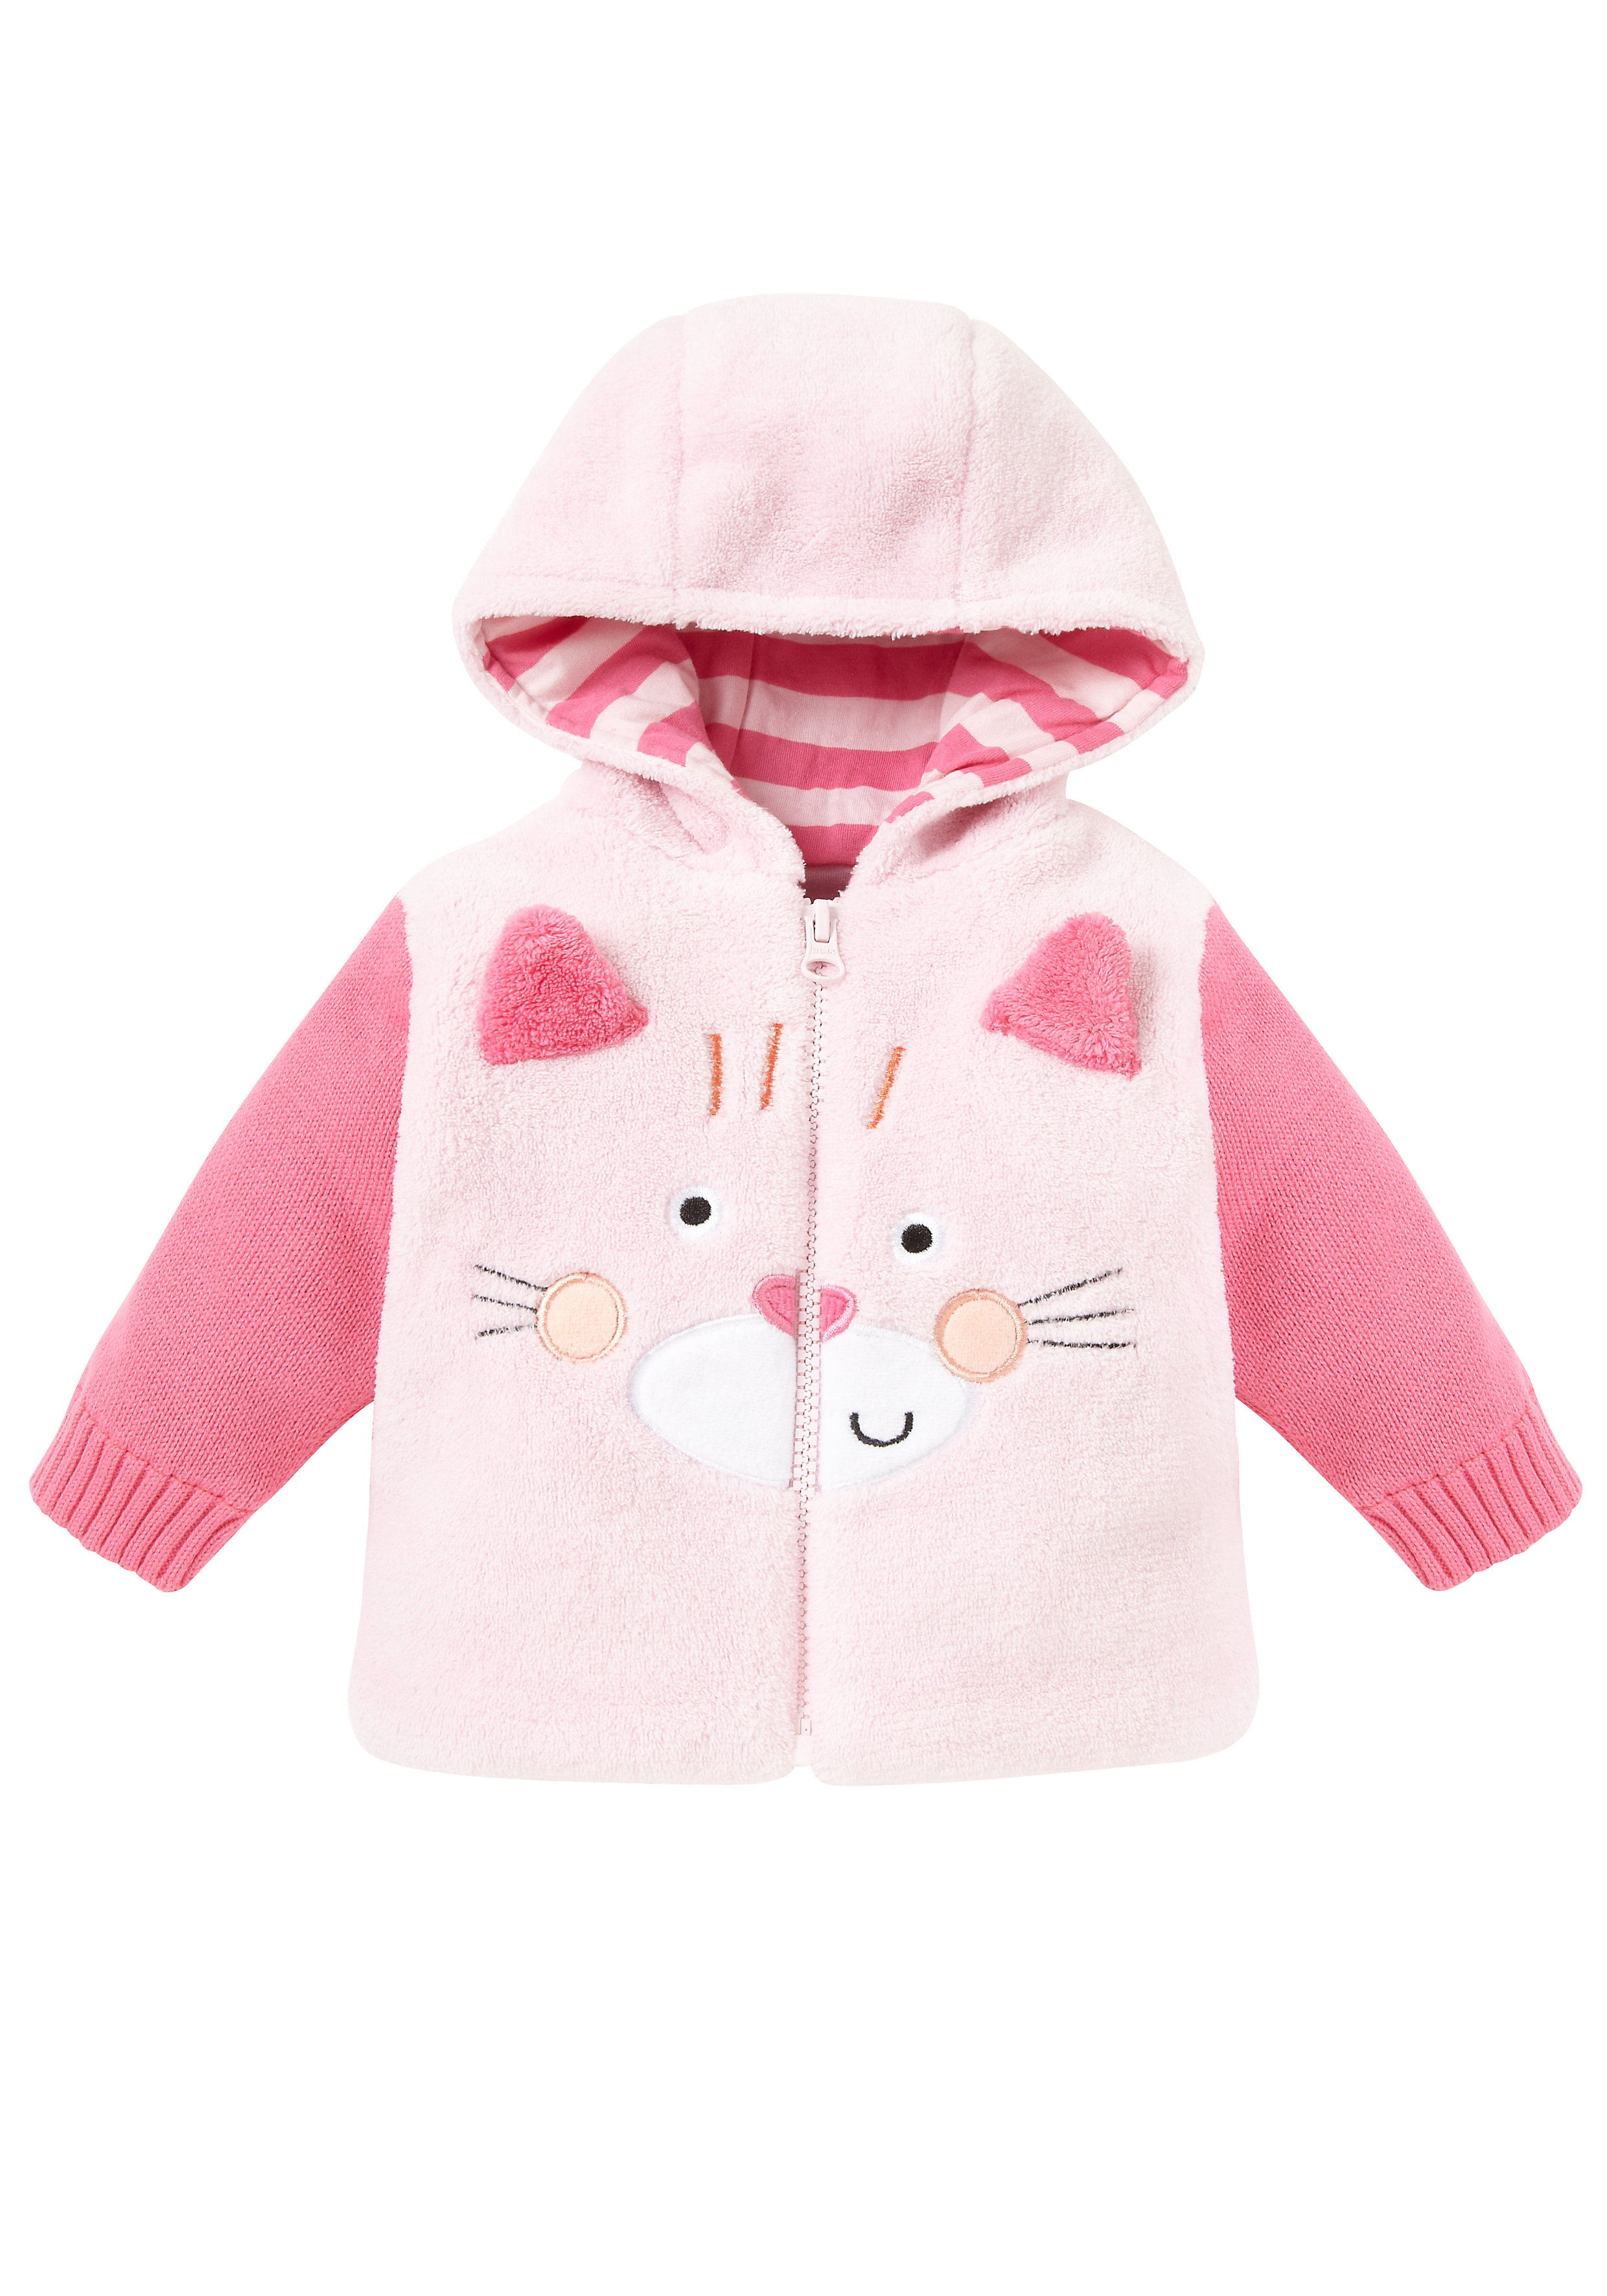 Mothercare | Girls Full Sleeves Jackets Hooded Fluffy - Pink